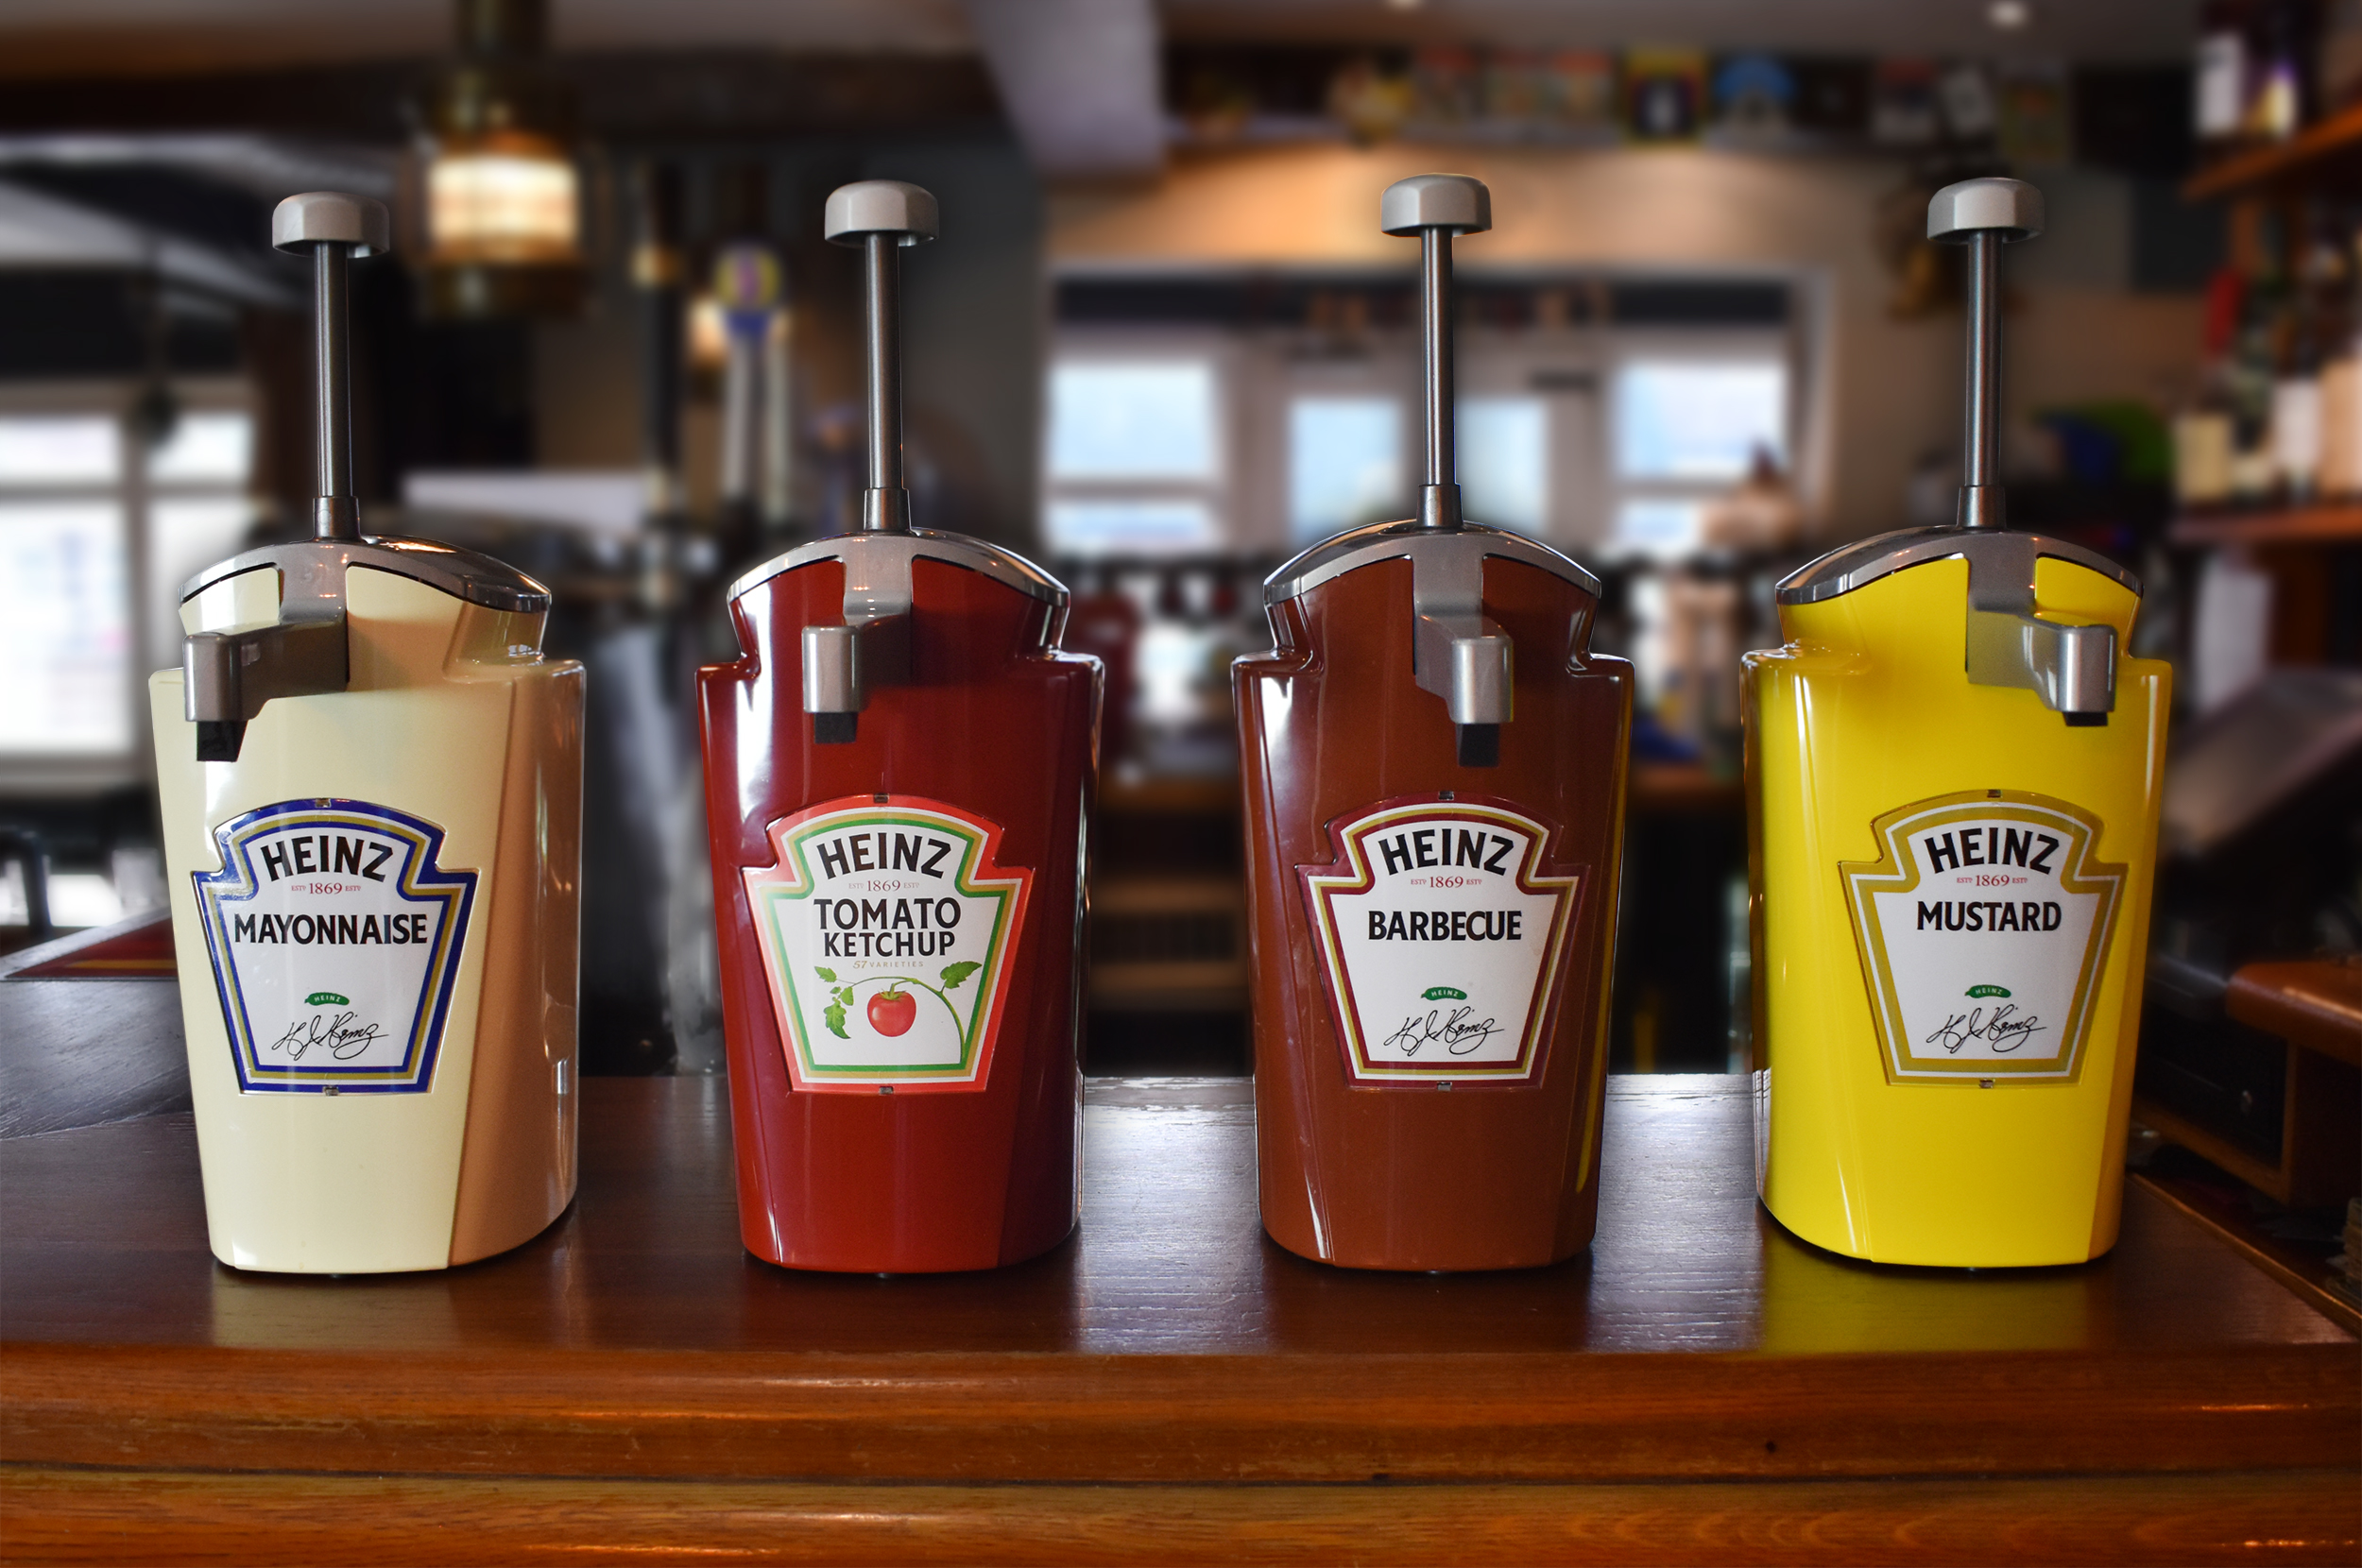 Heinz Tomato Ketchup 5L